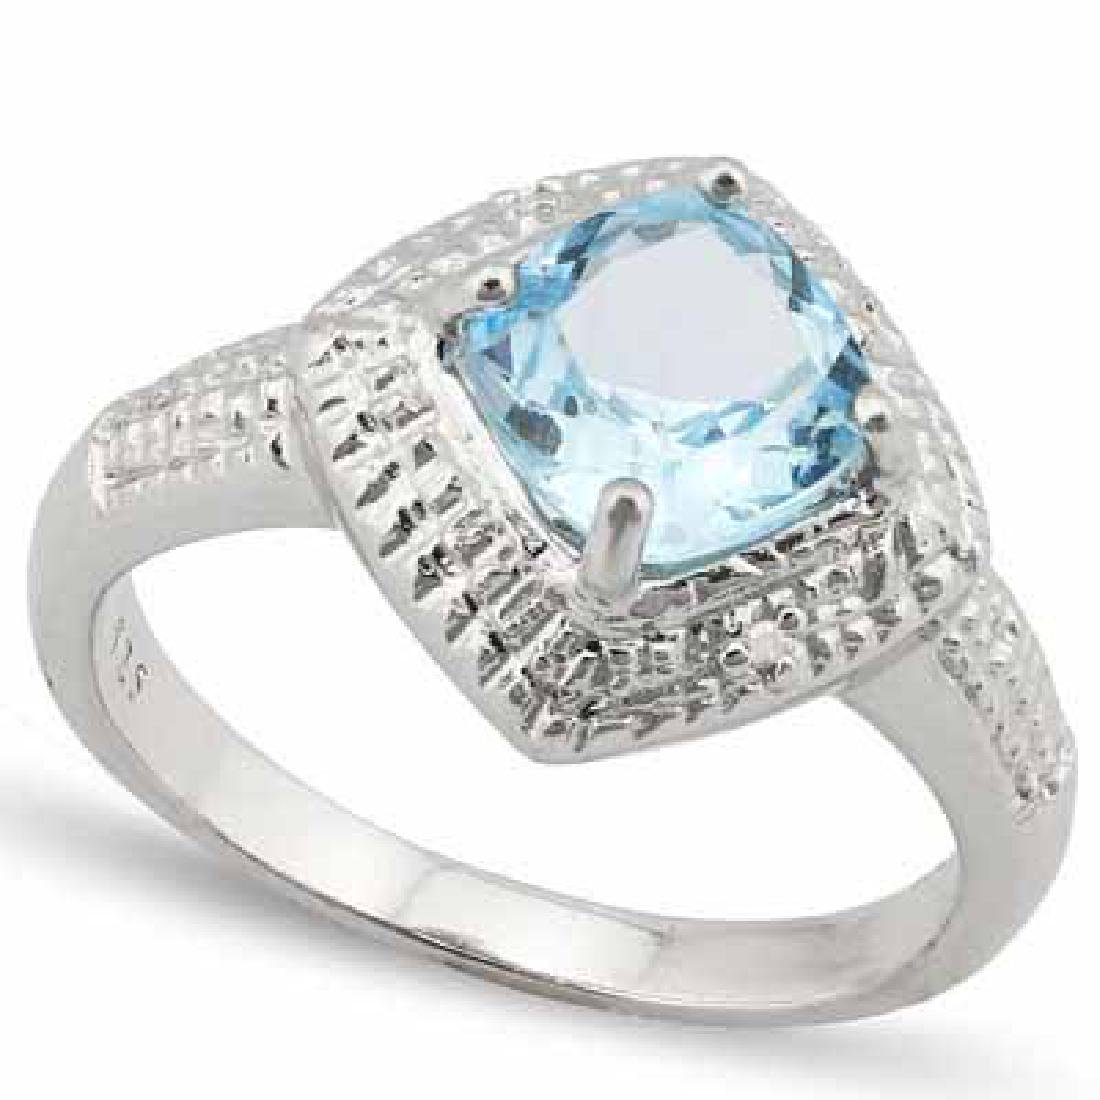 1.772 CARAT TW BLUE TOPAZ & GENUINE DIAMOND PLATINUM OV